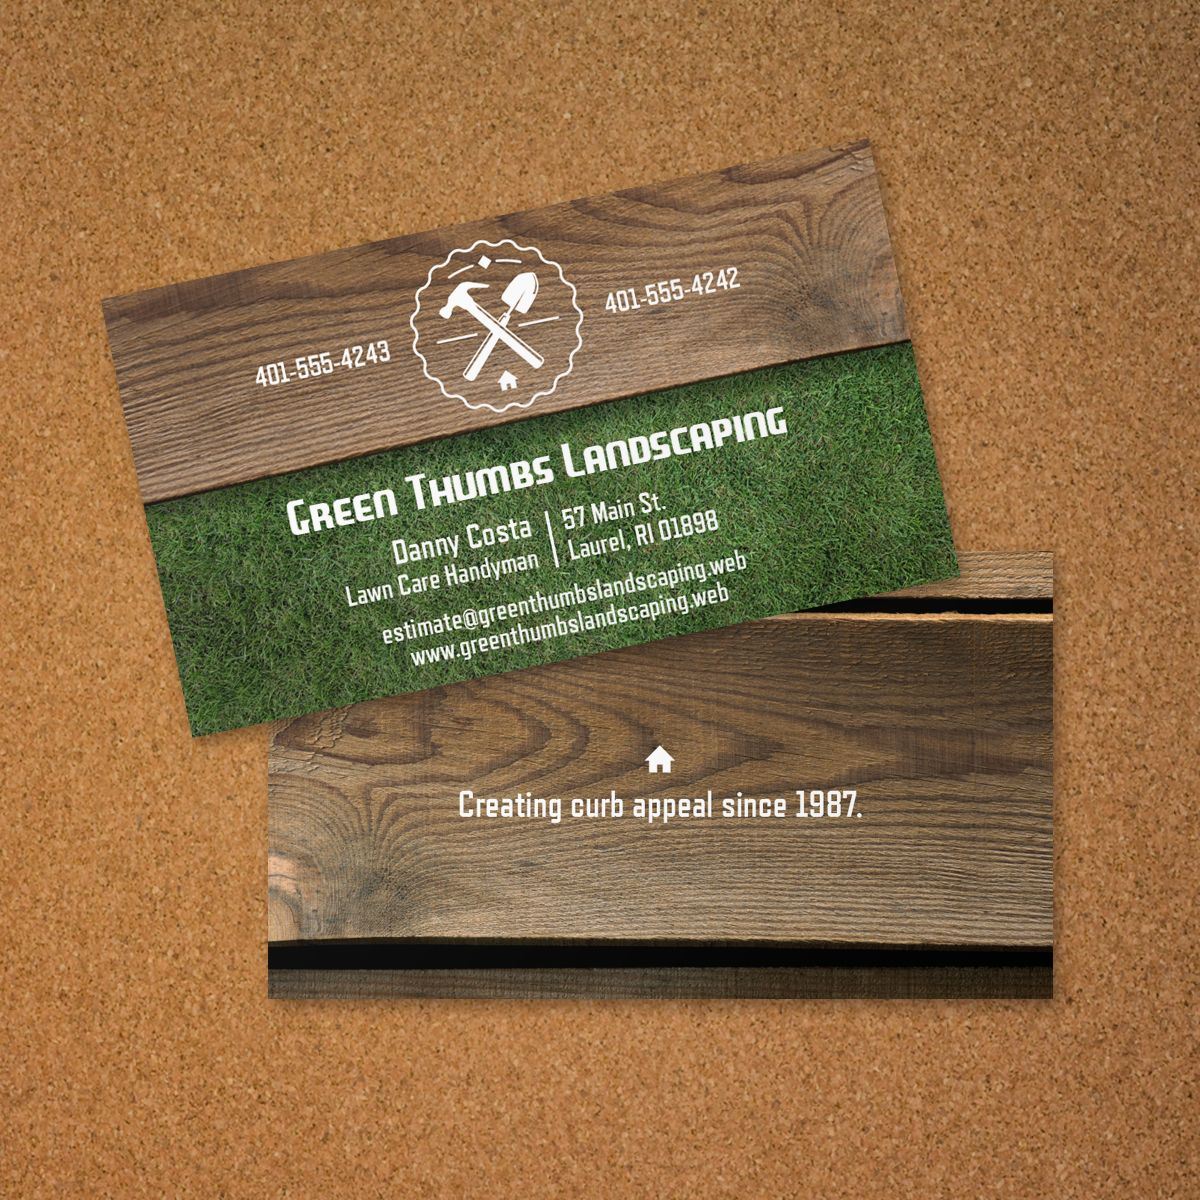 landscaping business cards ideas - Ideal.vistalist.co